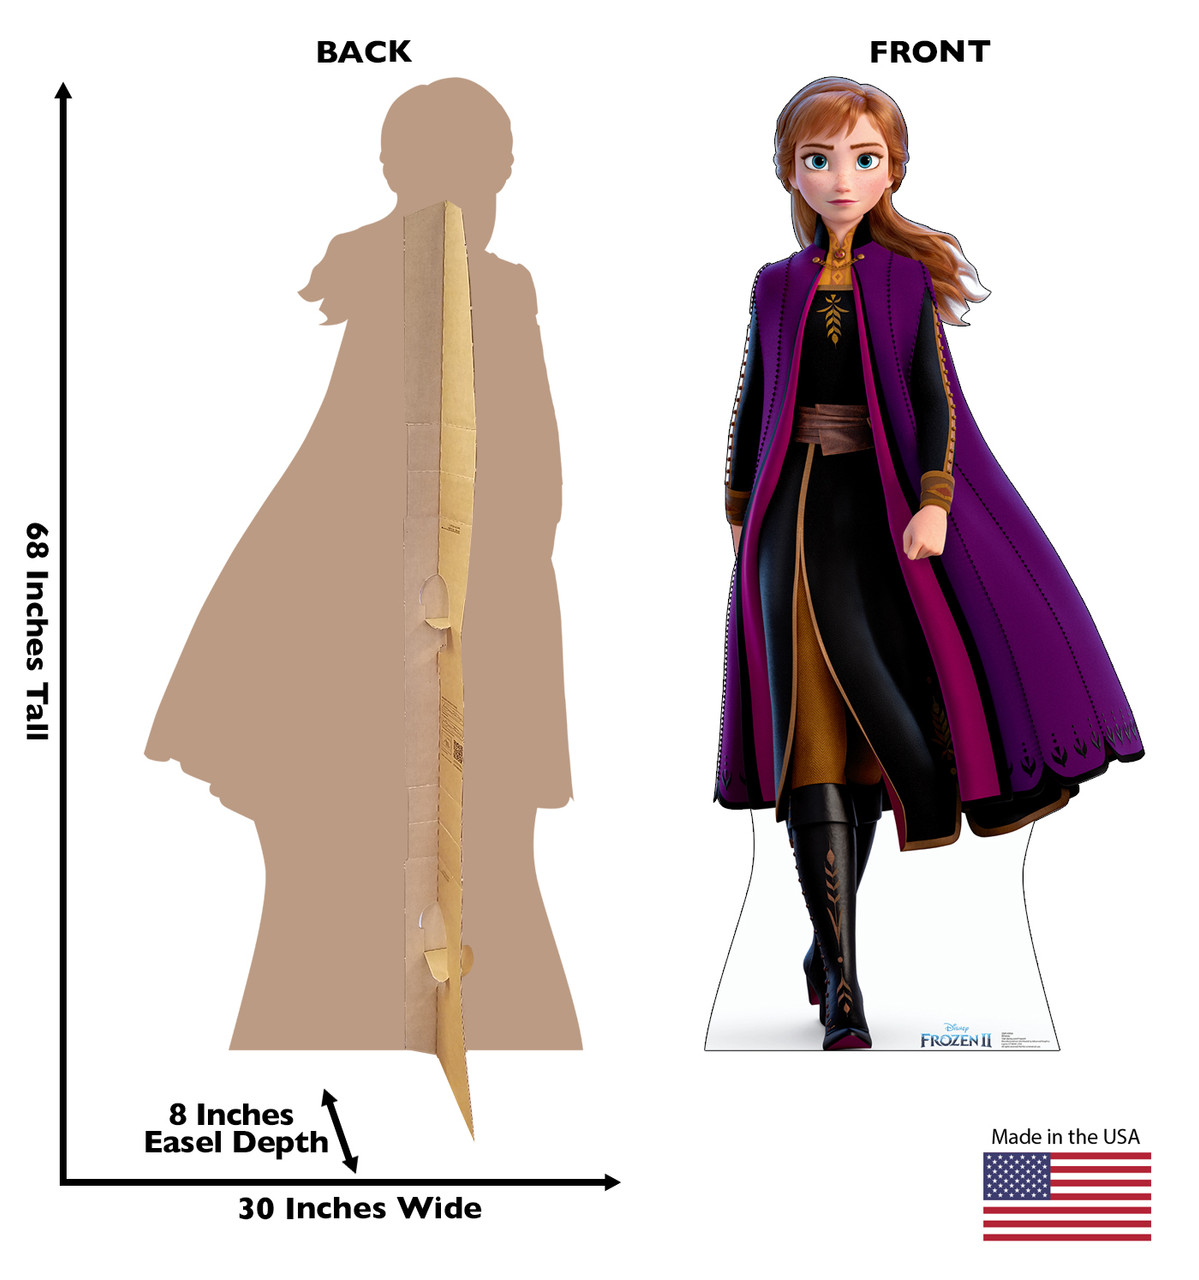 Life-size cardboard standee of Anna from Disney's Frozen 2) with back and front dimensions.